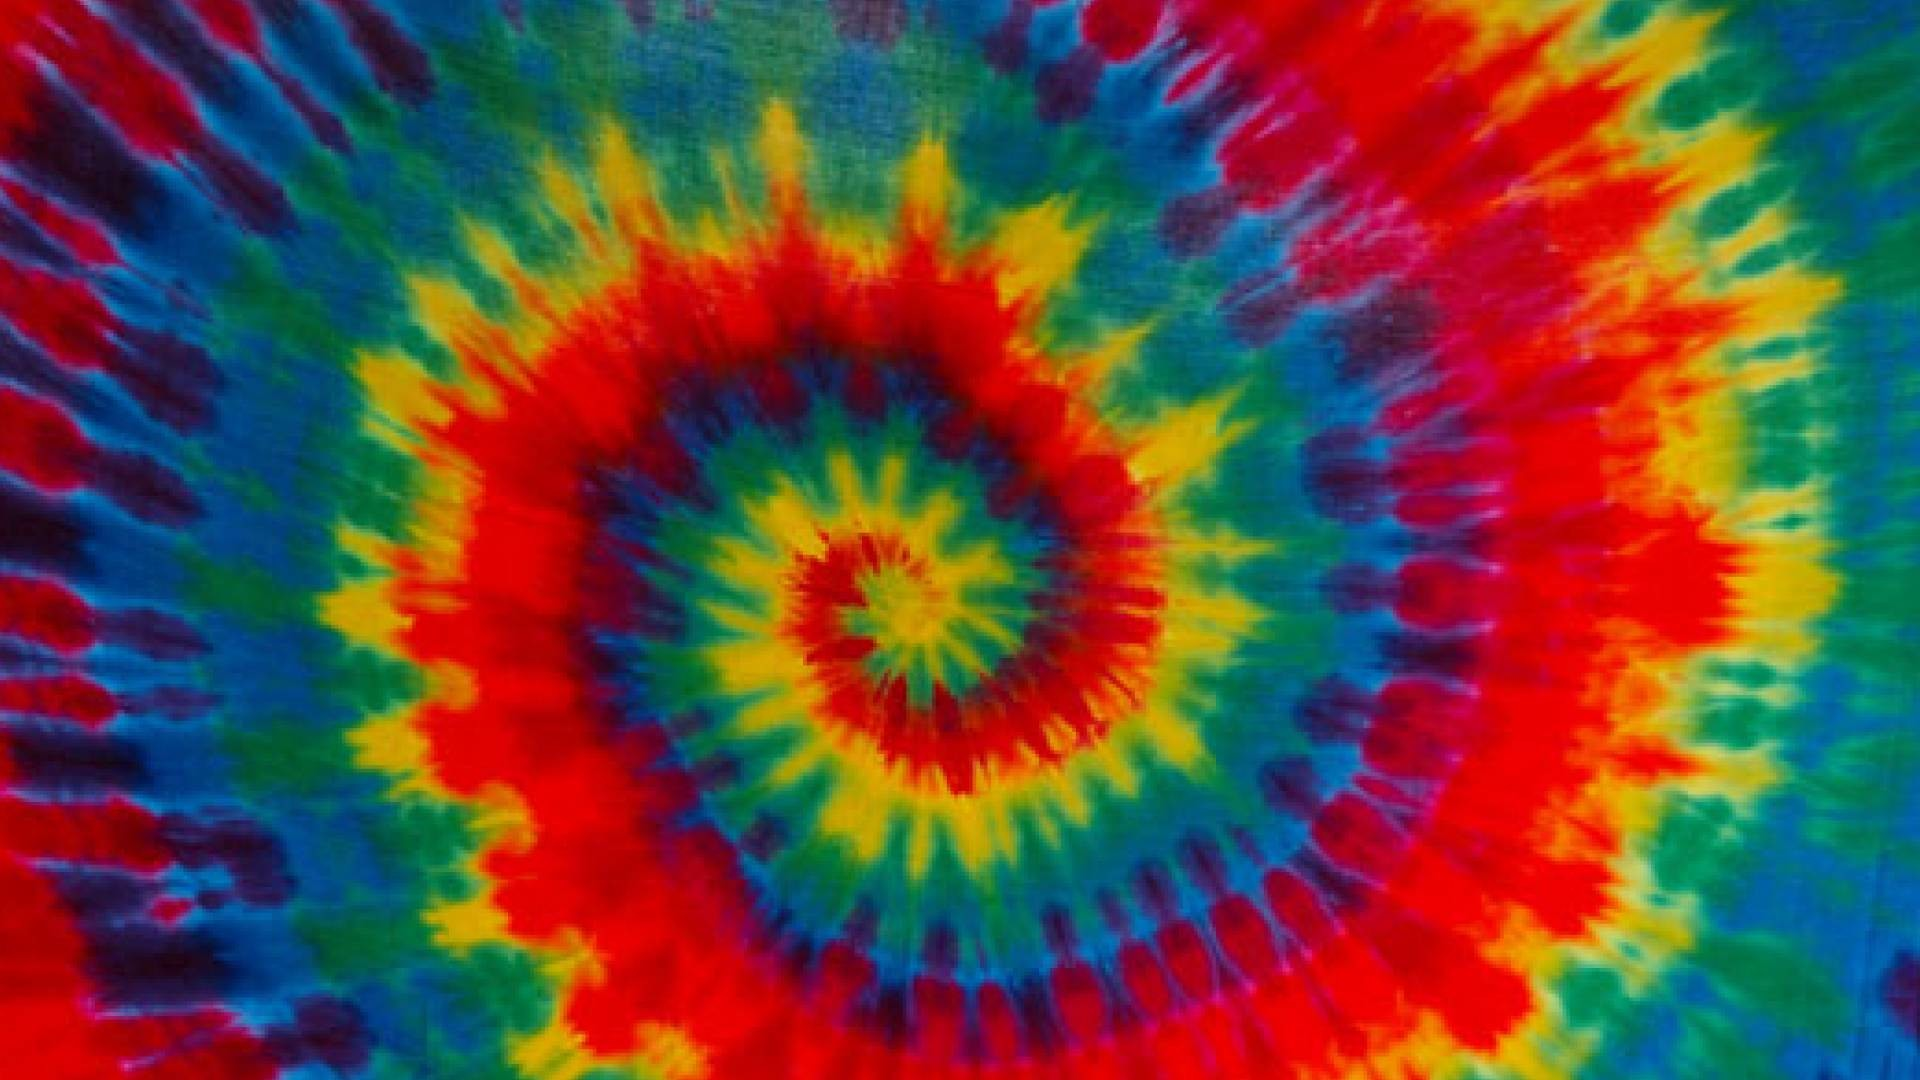 1920x1080 Tie Dye Wallpaper for Android Tie Dye Wallpaper Iphone #7864. Background ...